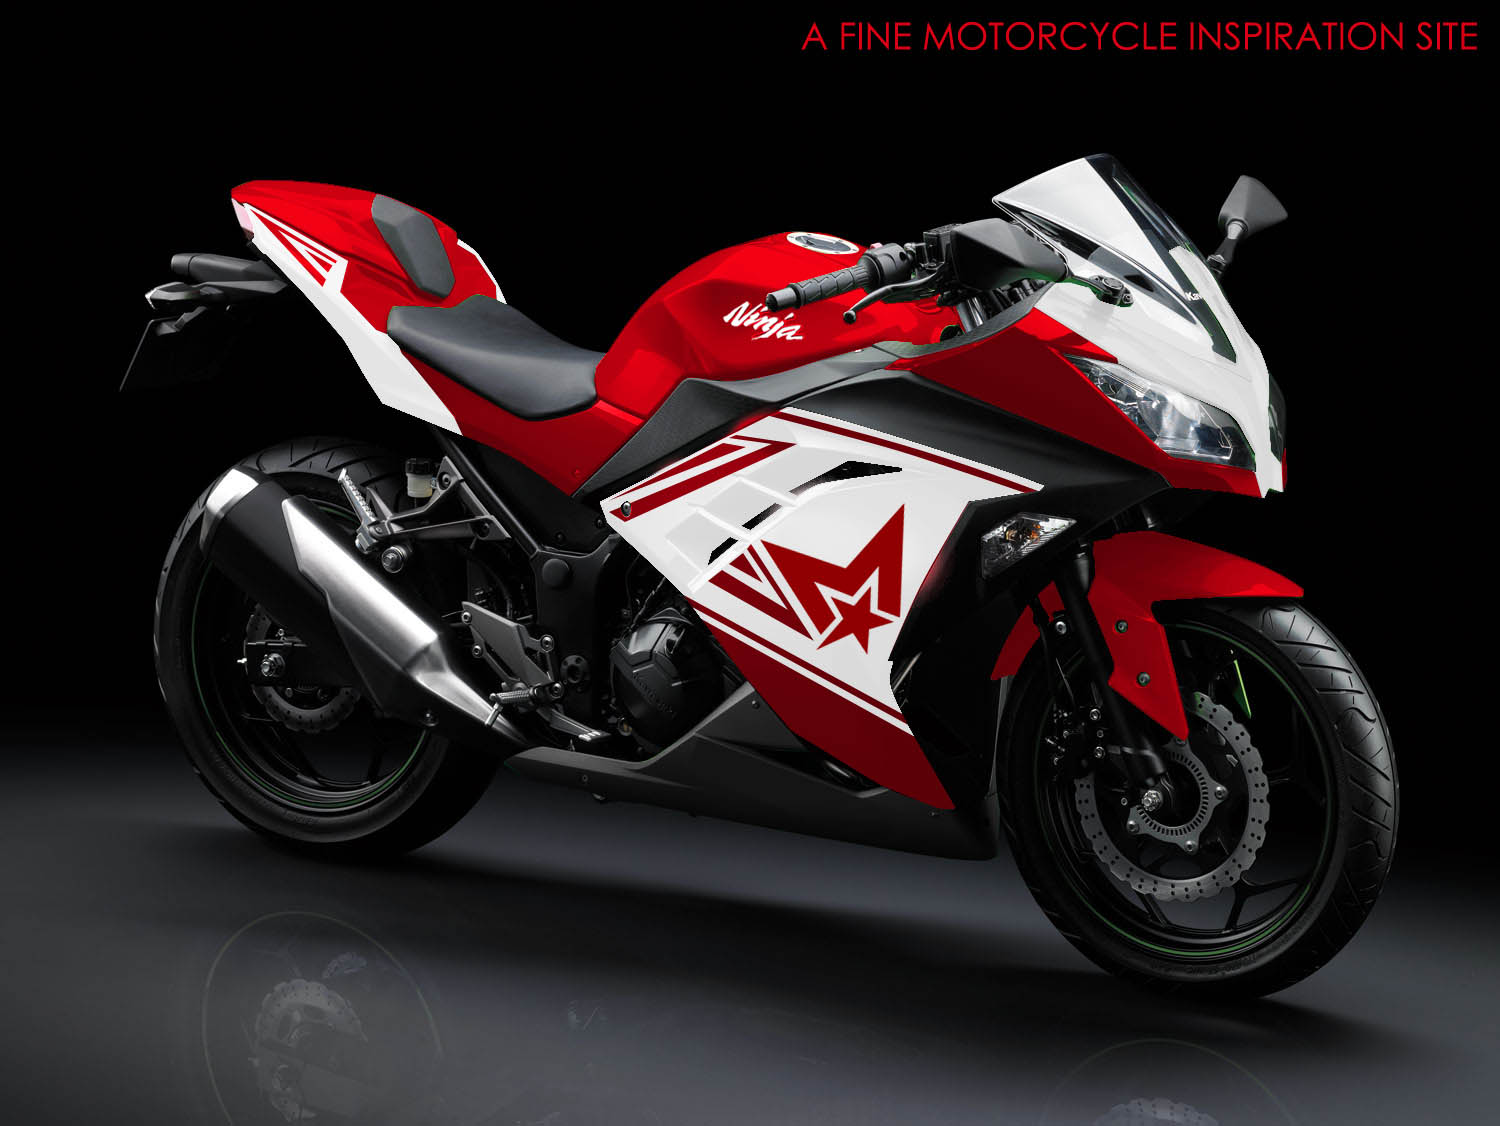 modif striping kawasaki ninja 250r fi red motoblast pictures. Black Bedroom Furniture Sets. Home Design Ideas